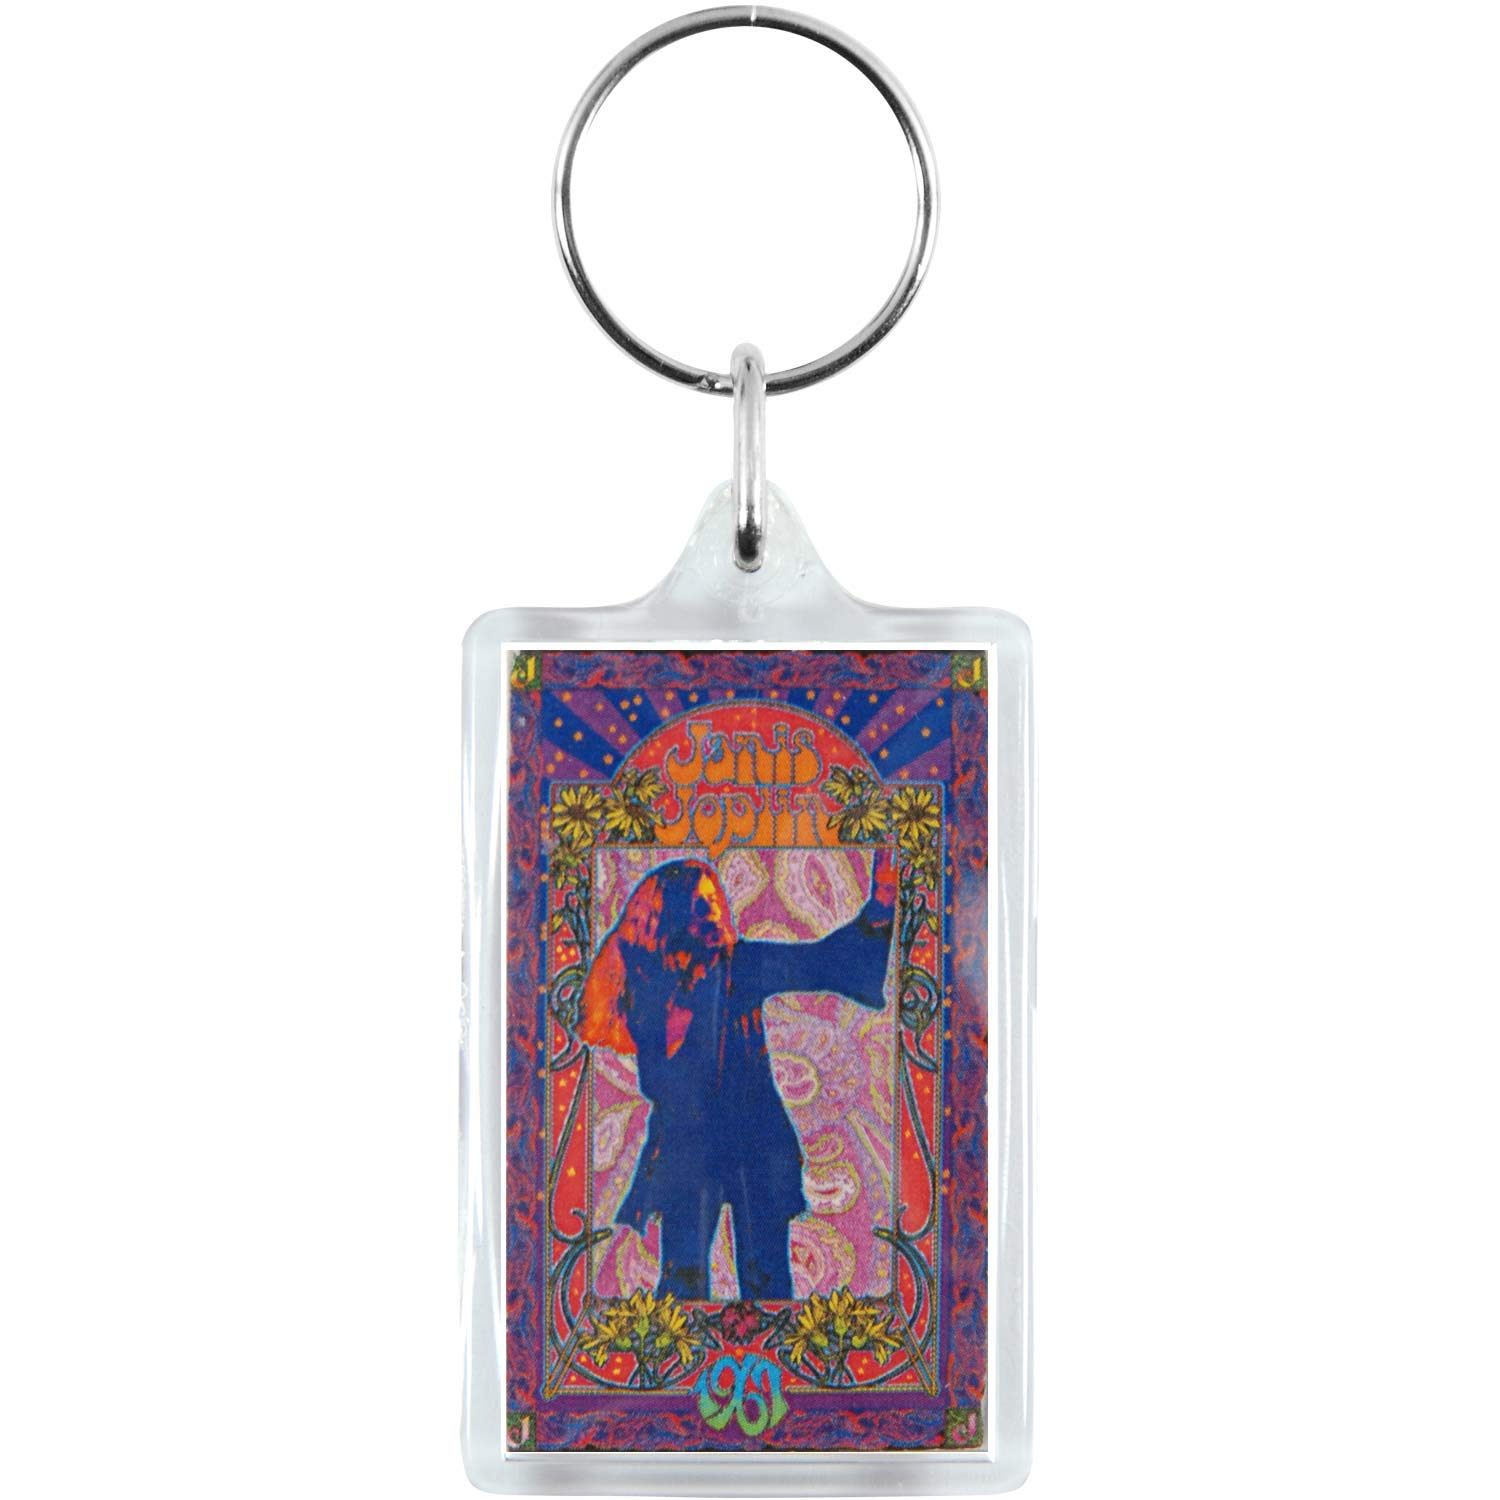 JOPLIN JANIS Poster, Official Licensed Artwork, 1' x 3.5' - Lucite High Quality KEYCHAIN 1 x 3.5 - Lucite High Quality KEYCHAIN Officially Licensed Merchandise & Original Artworks